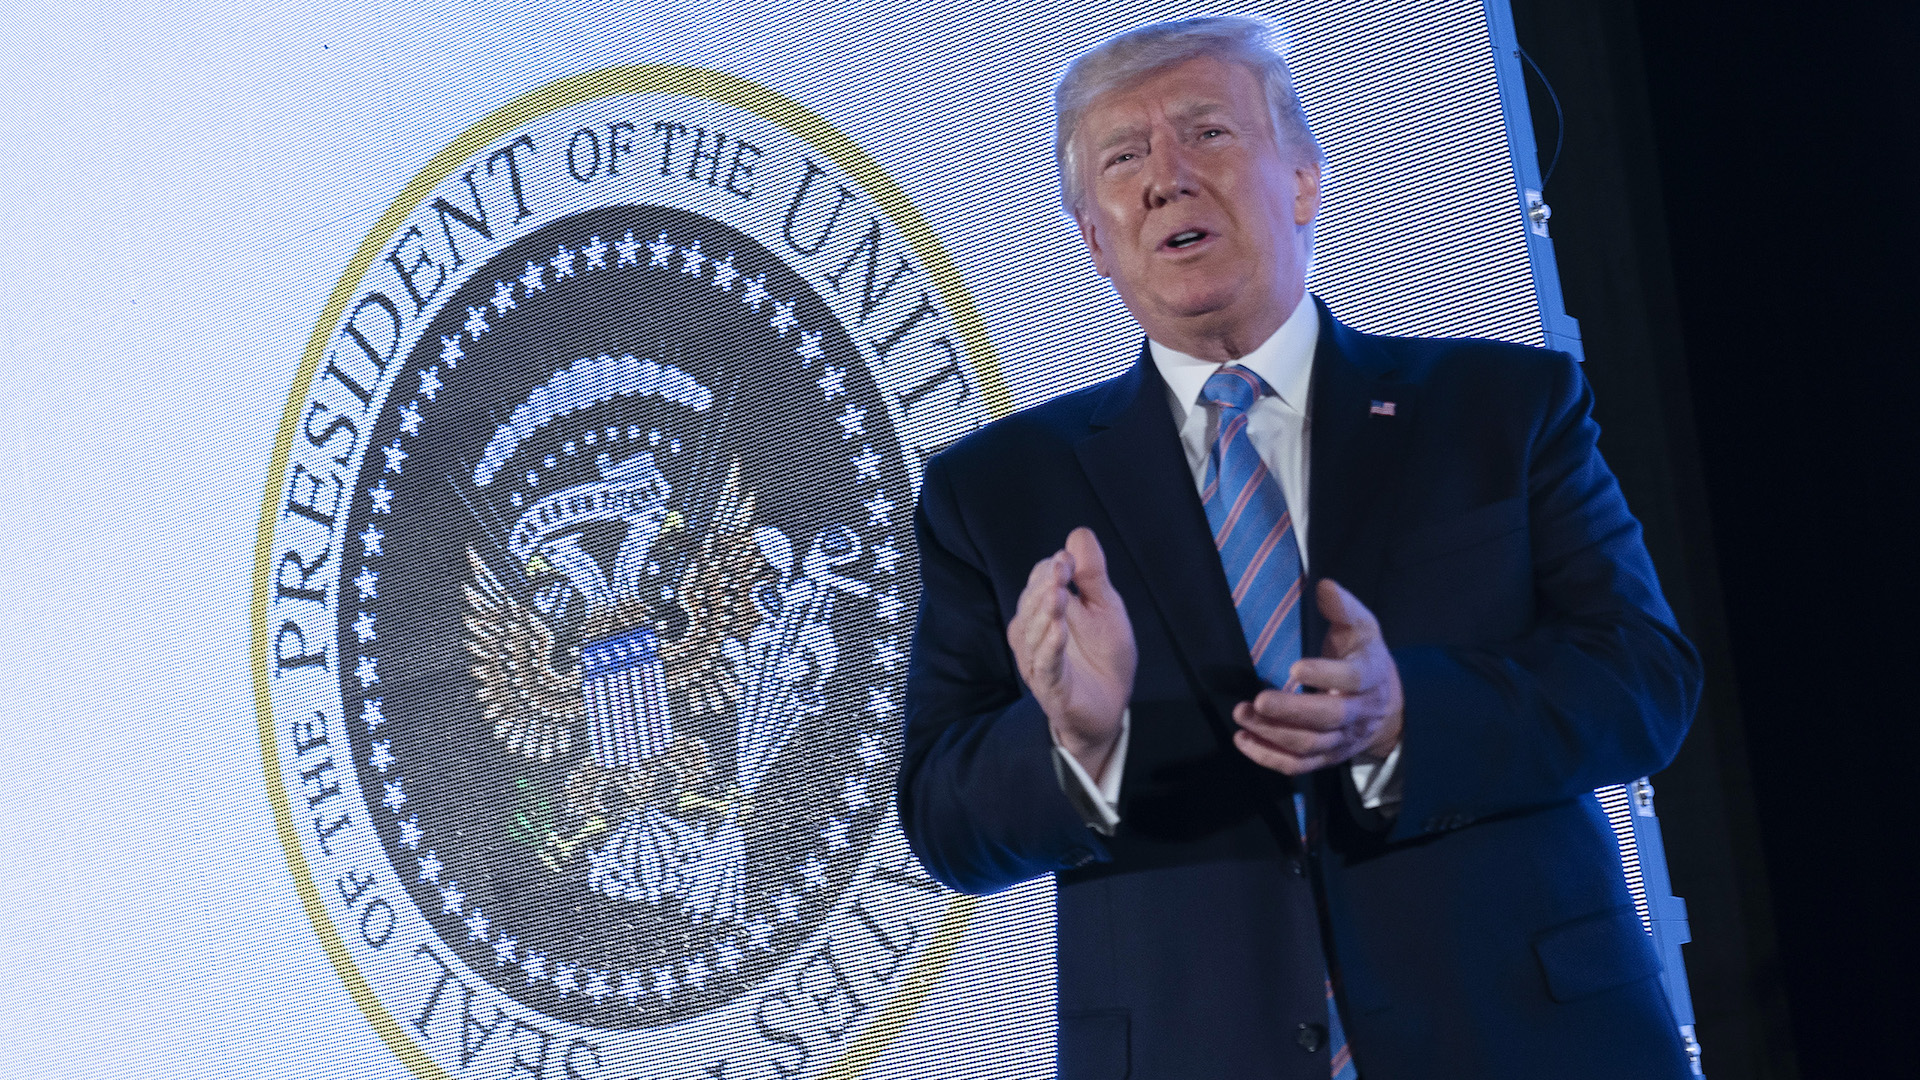 How Trump ended up in front of a presidential seal doctored to include a Russian symbol